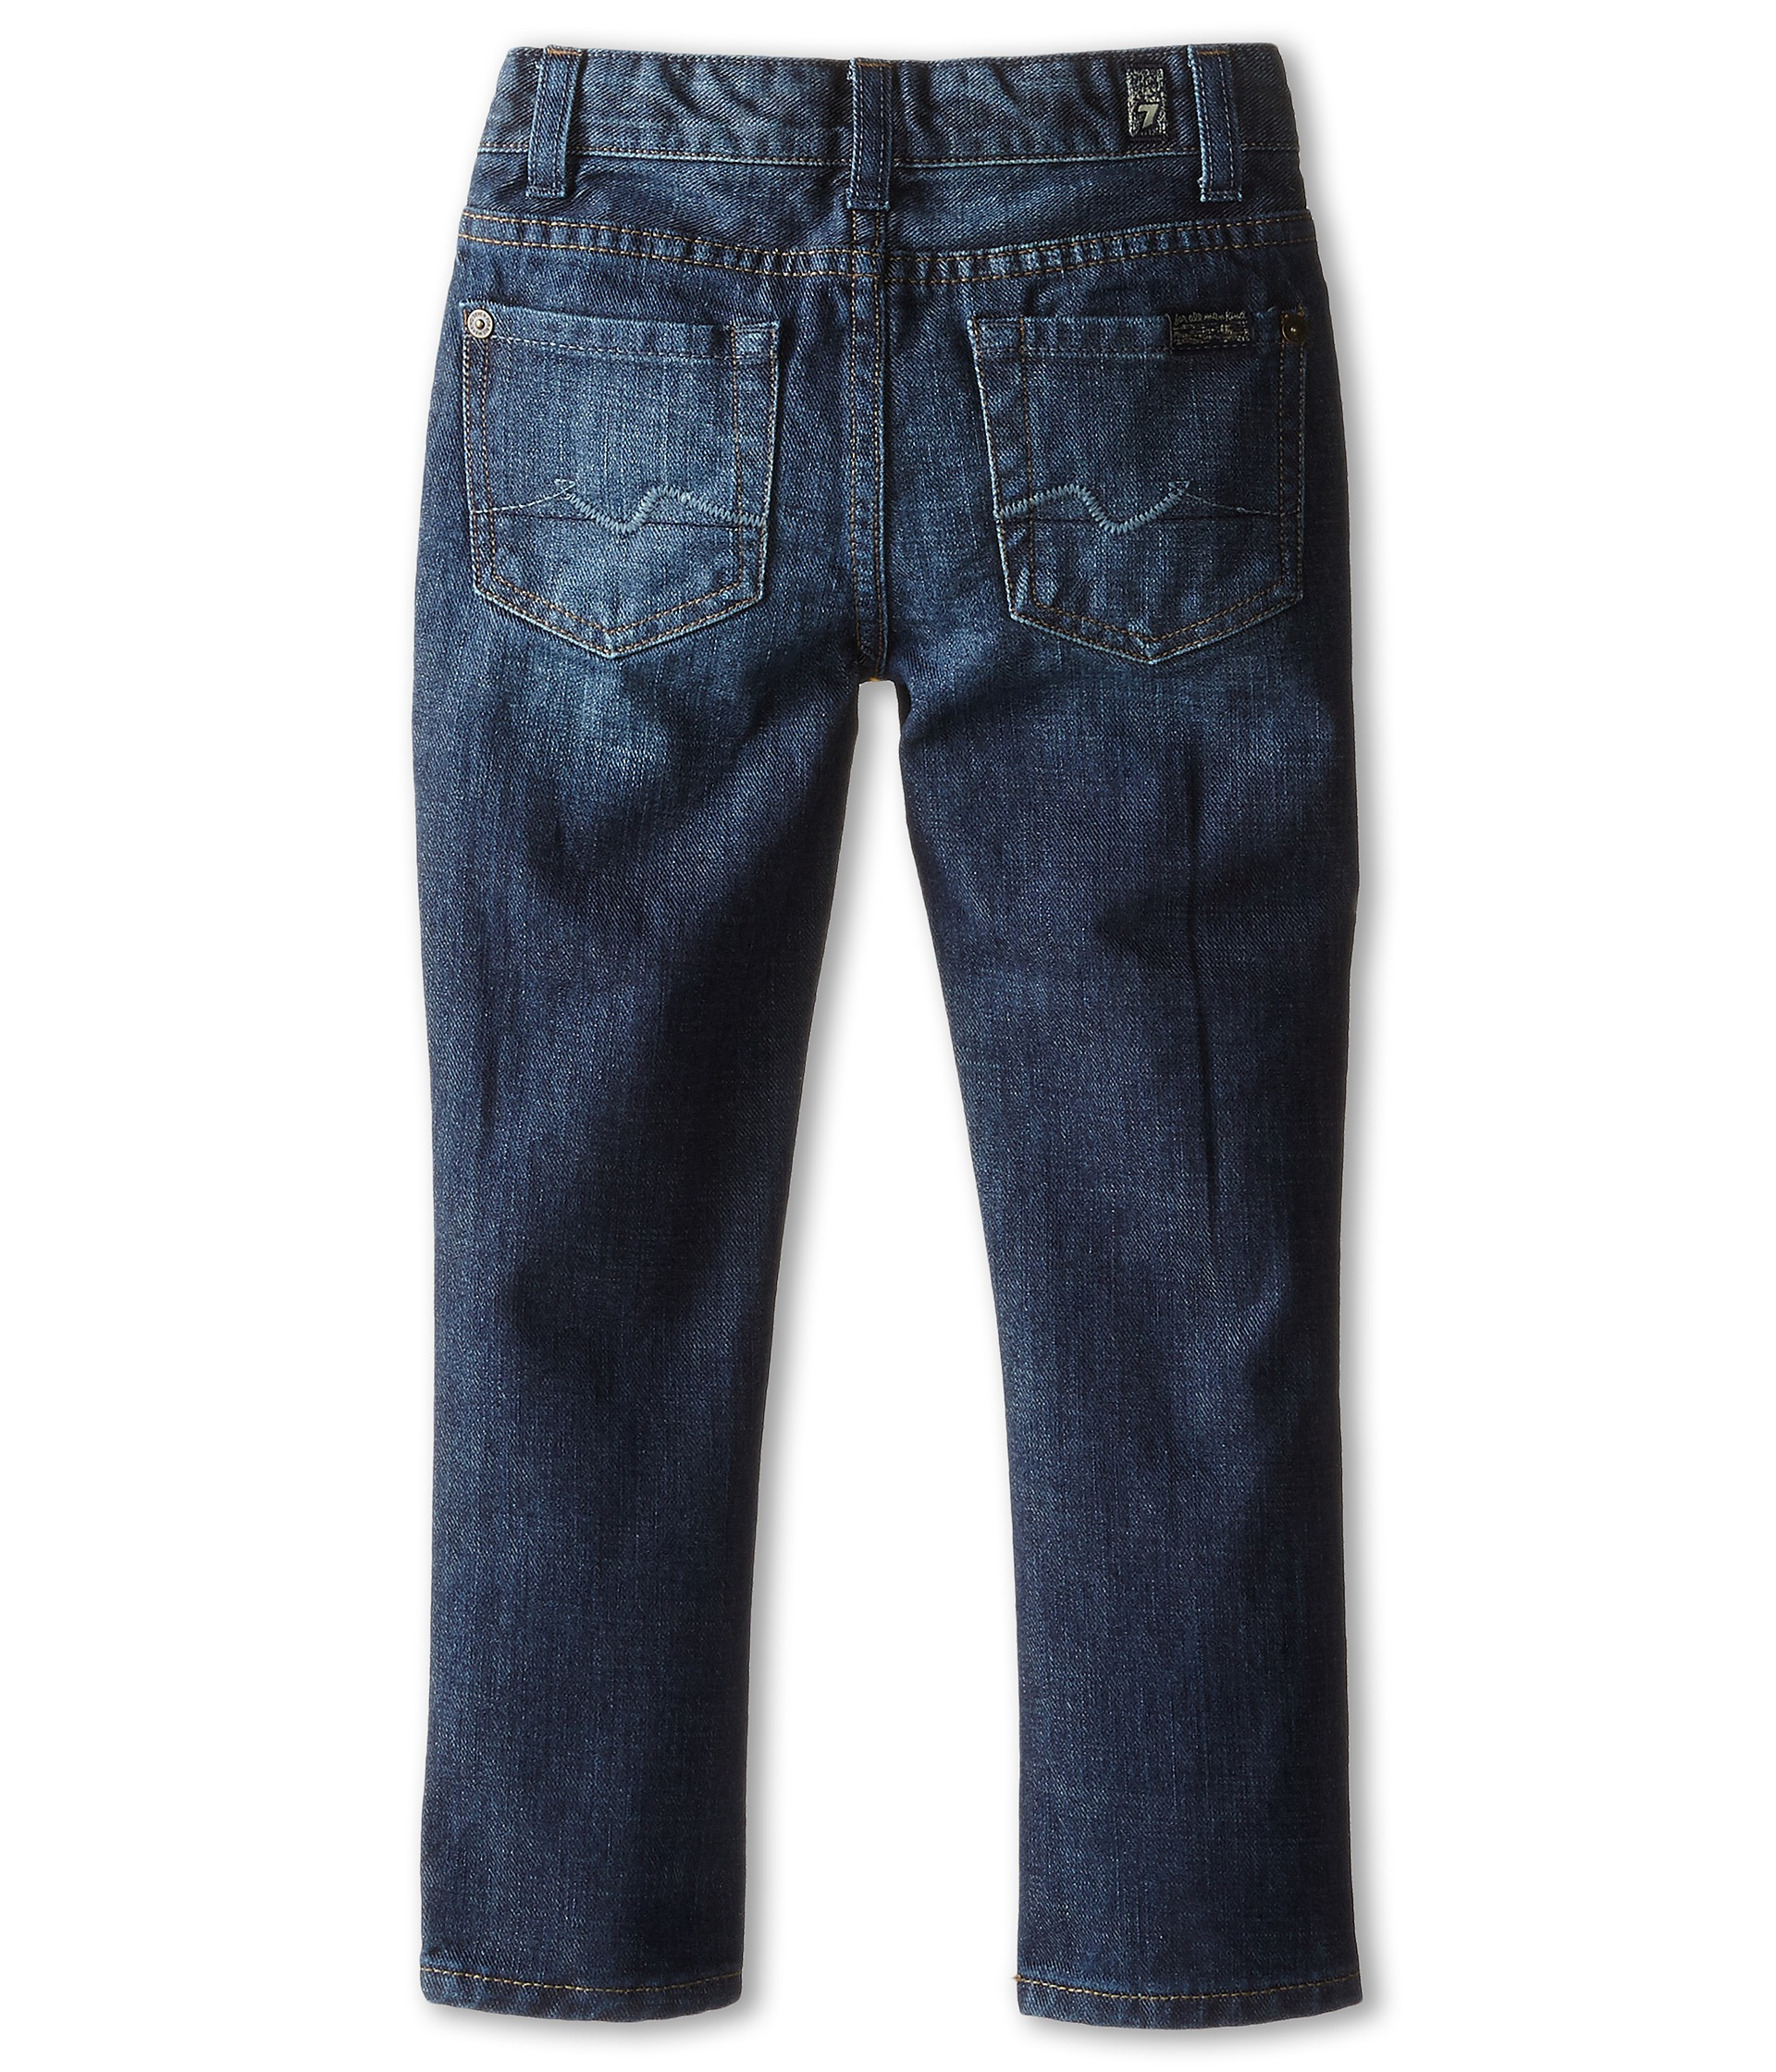 7 for all mankind coole casual wear denim looks zalando number 72 seventy seven two gift by stenk sprehirt seventy 7 jeans image of boys premium jeans denim for kids.